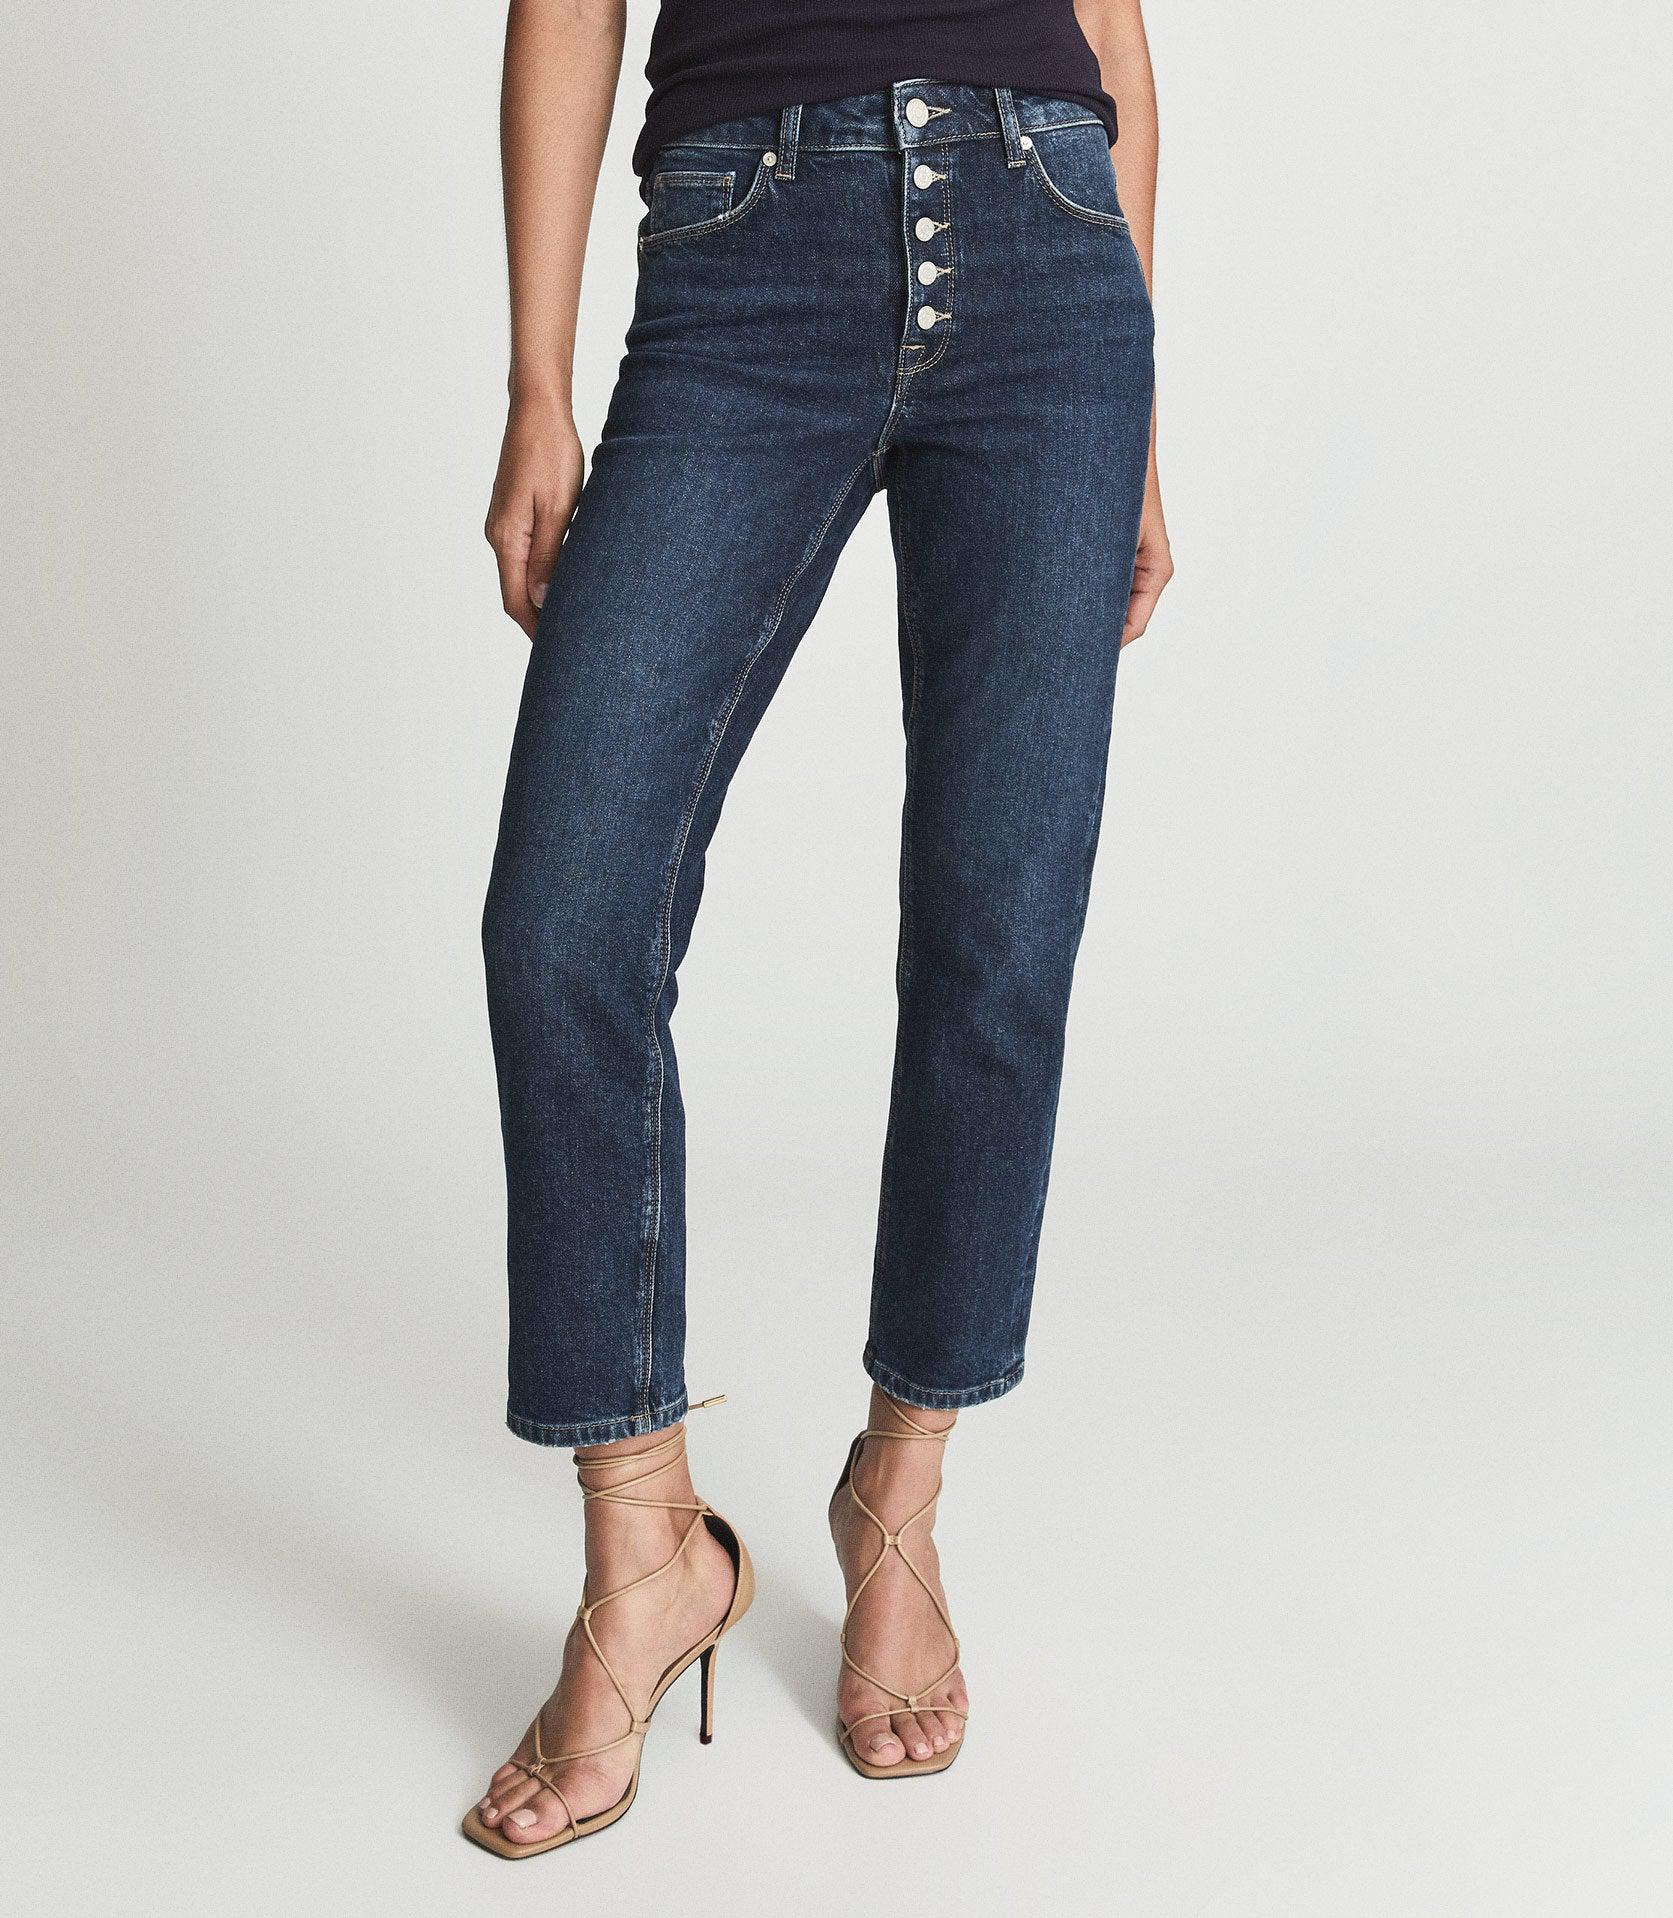 BAILEY - MID RISE SLIM CROPPED JEANS 1